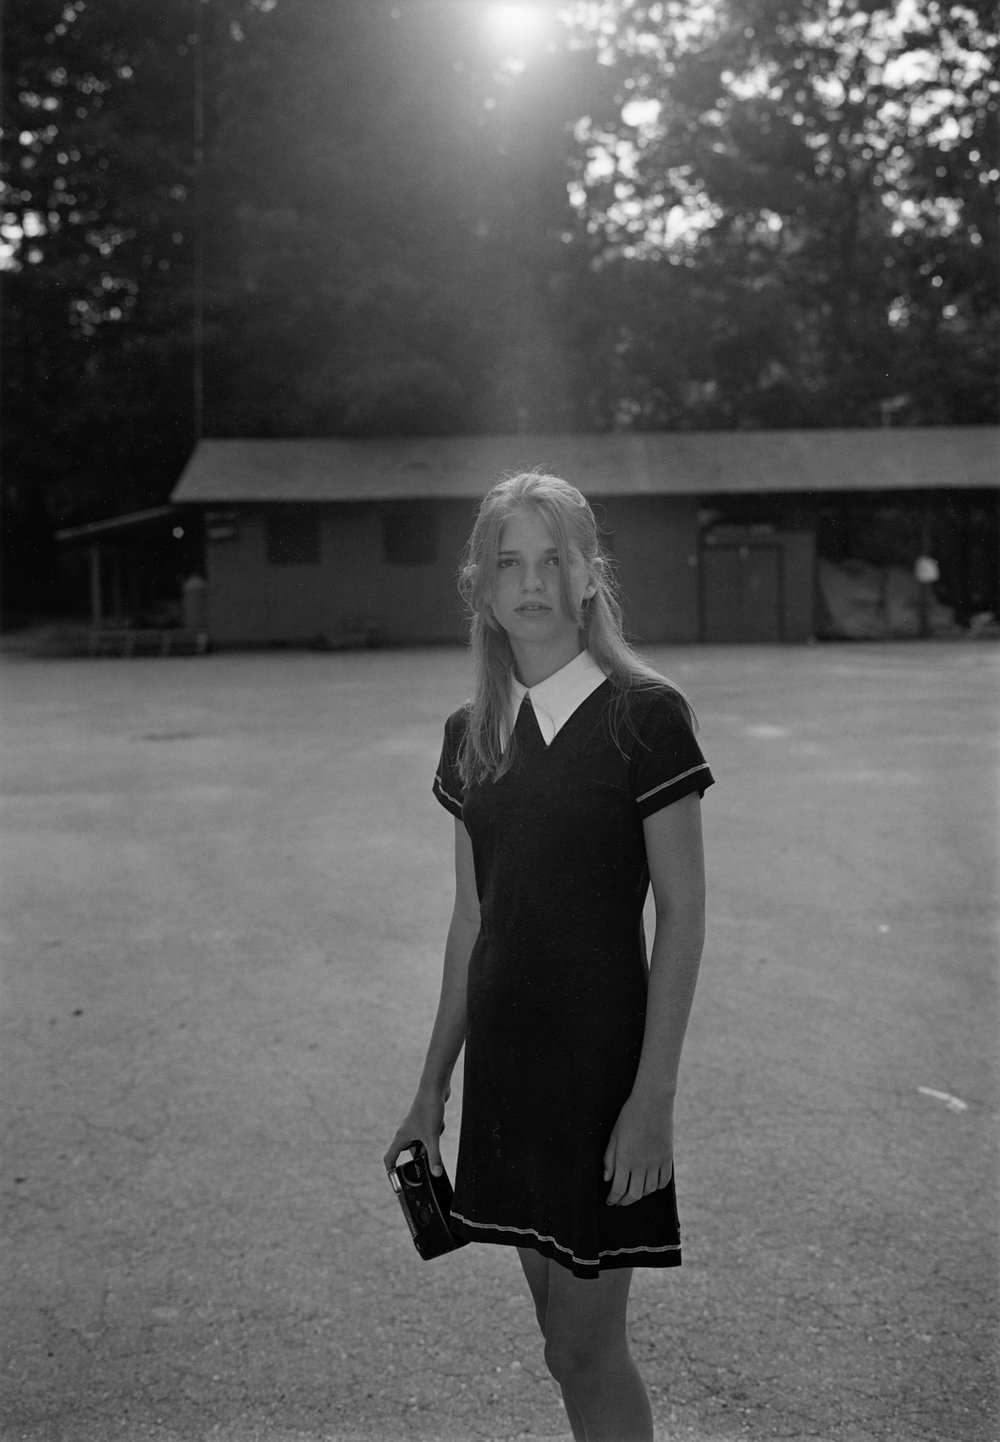 Summer Camp, Hendersonville, NC, 1995